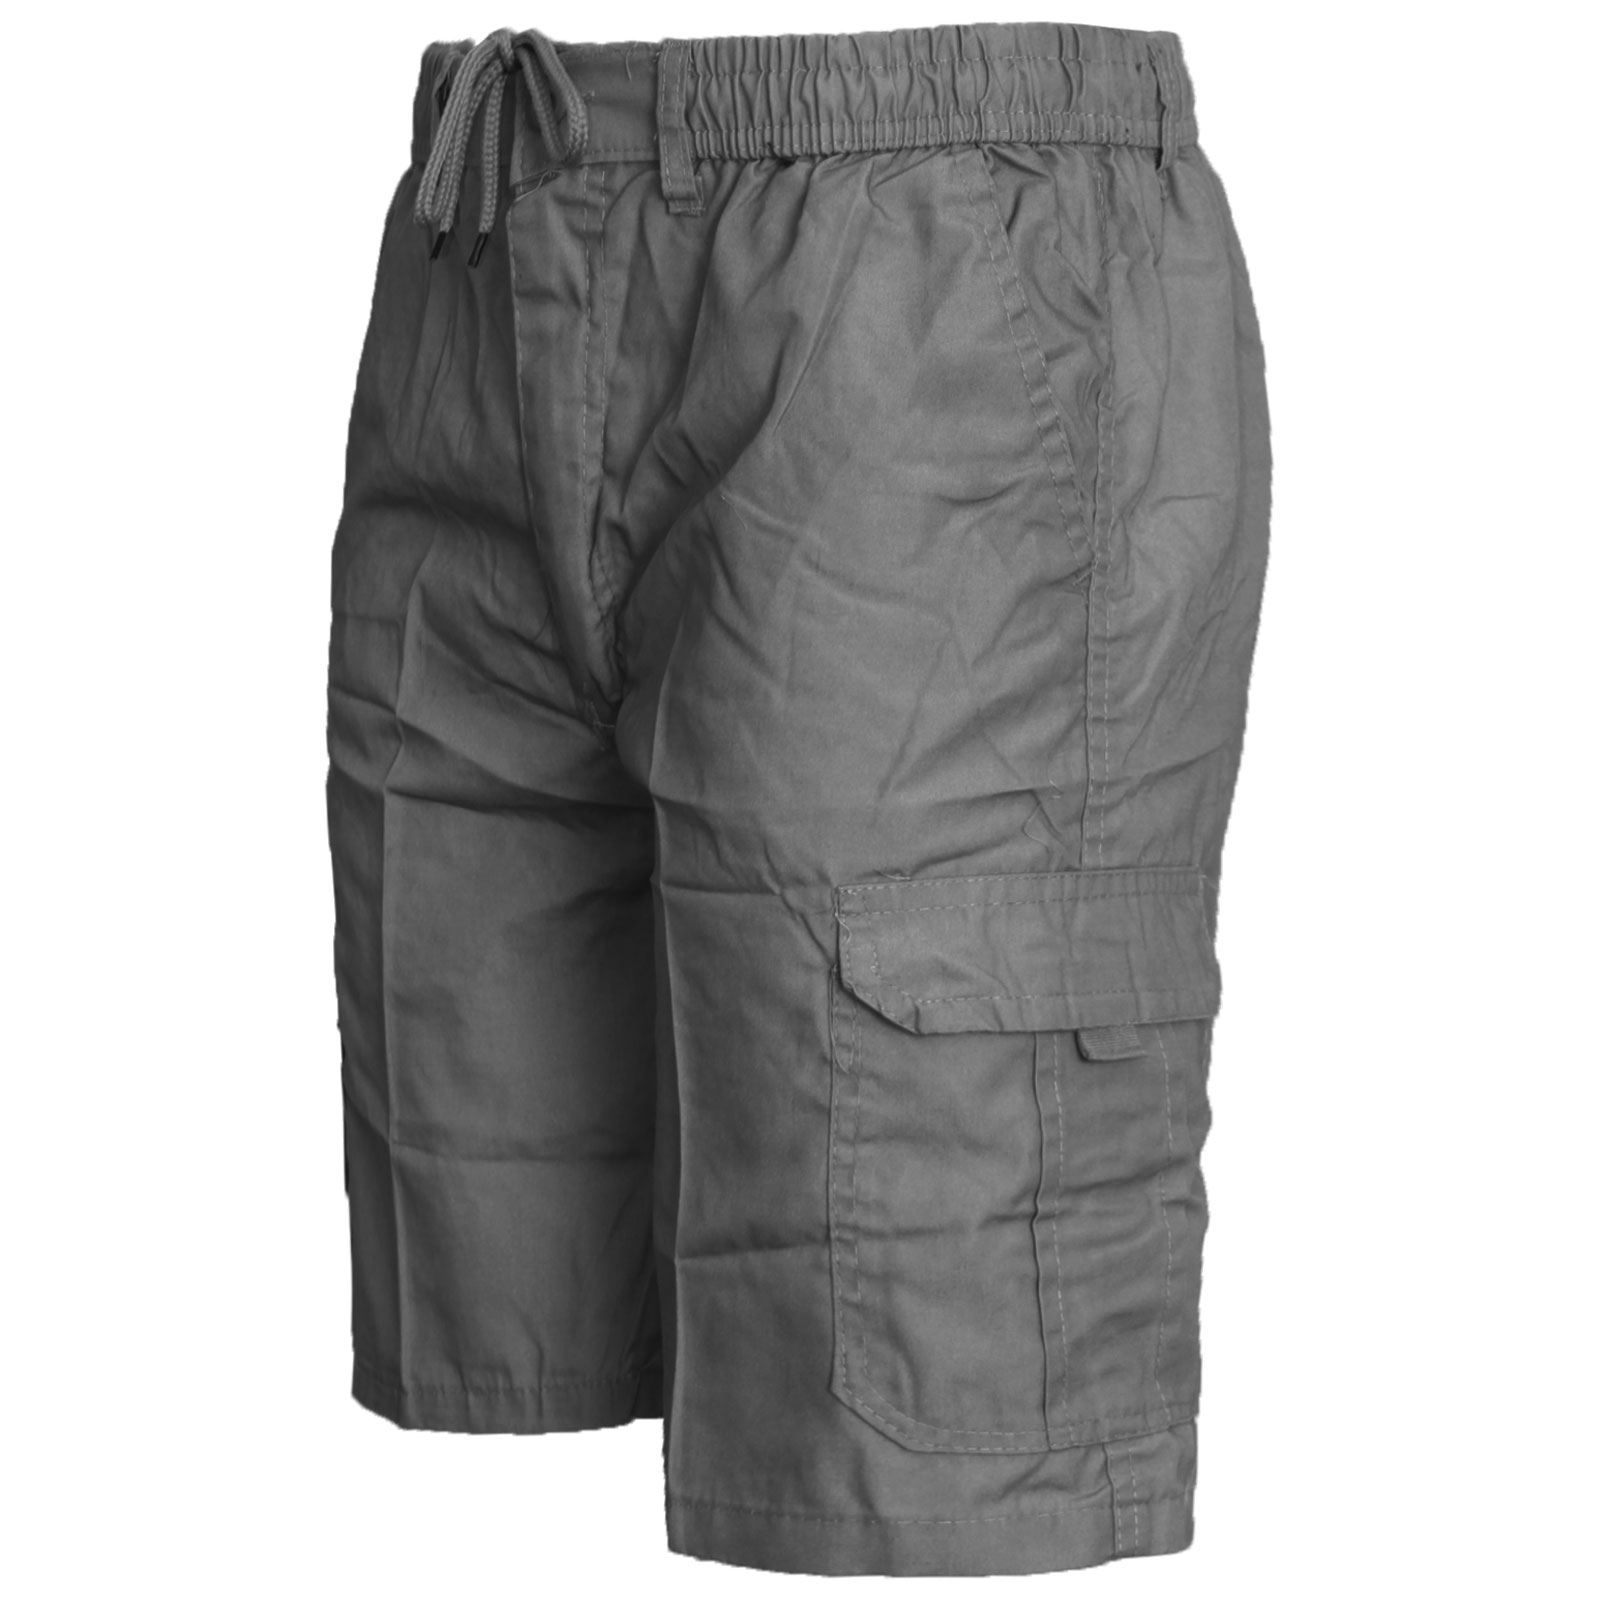 New Mens Cargo Shorts Combat Pockets Plain Summer Elasticated Waist Pants M-3XL